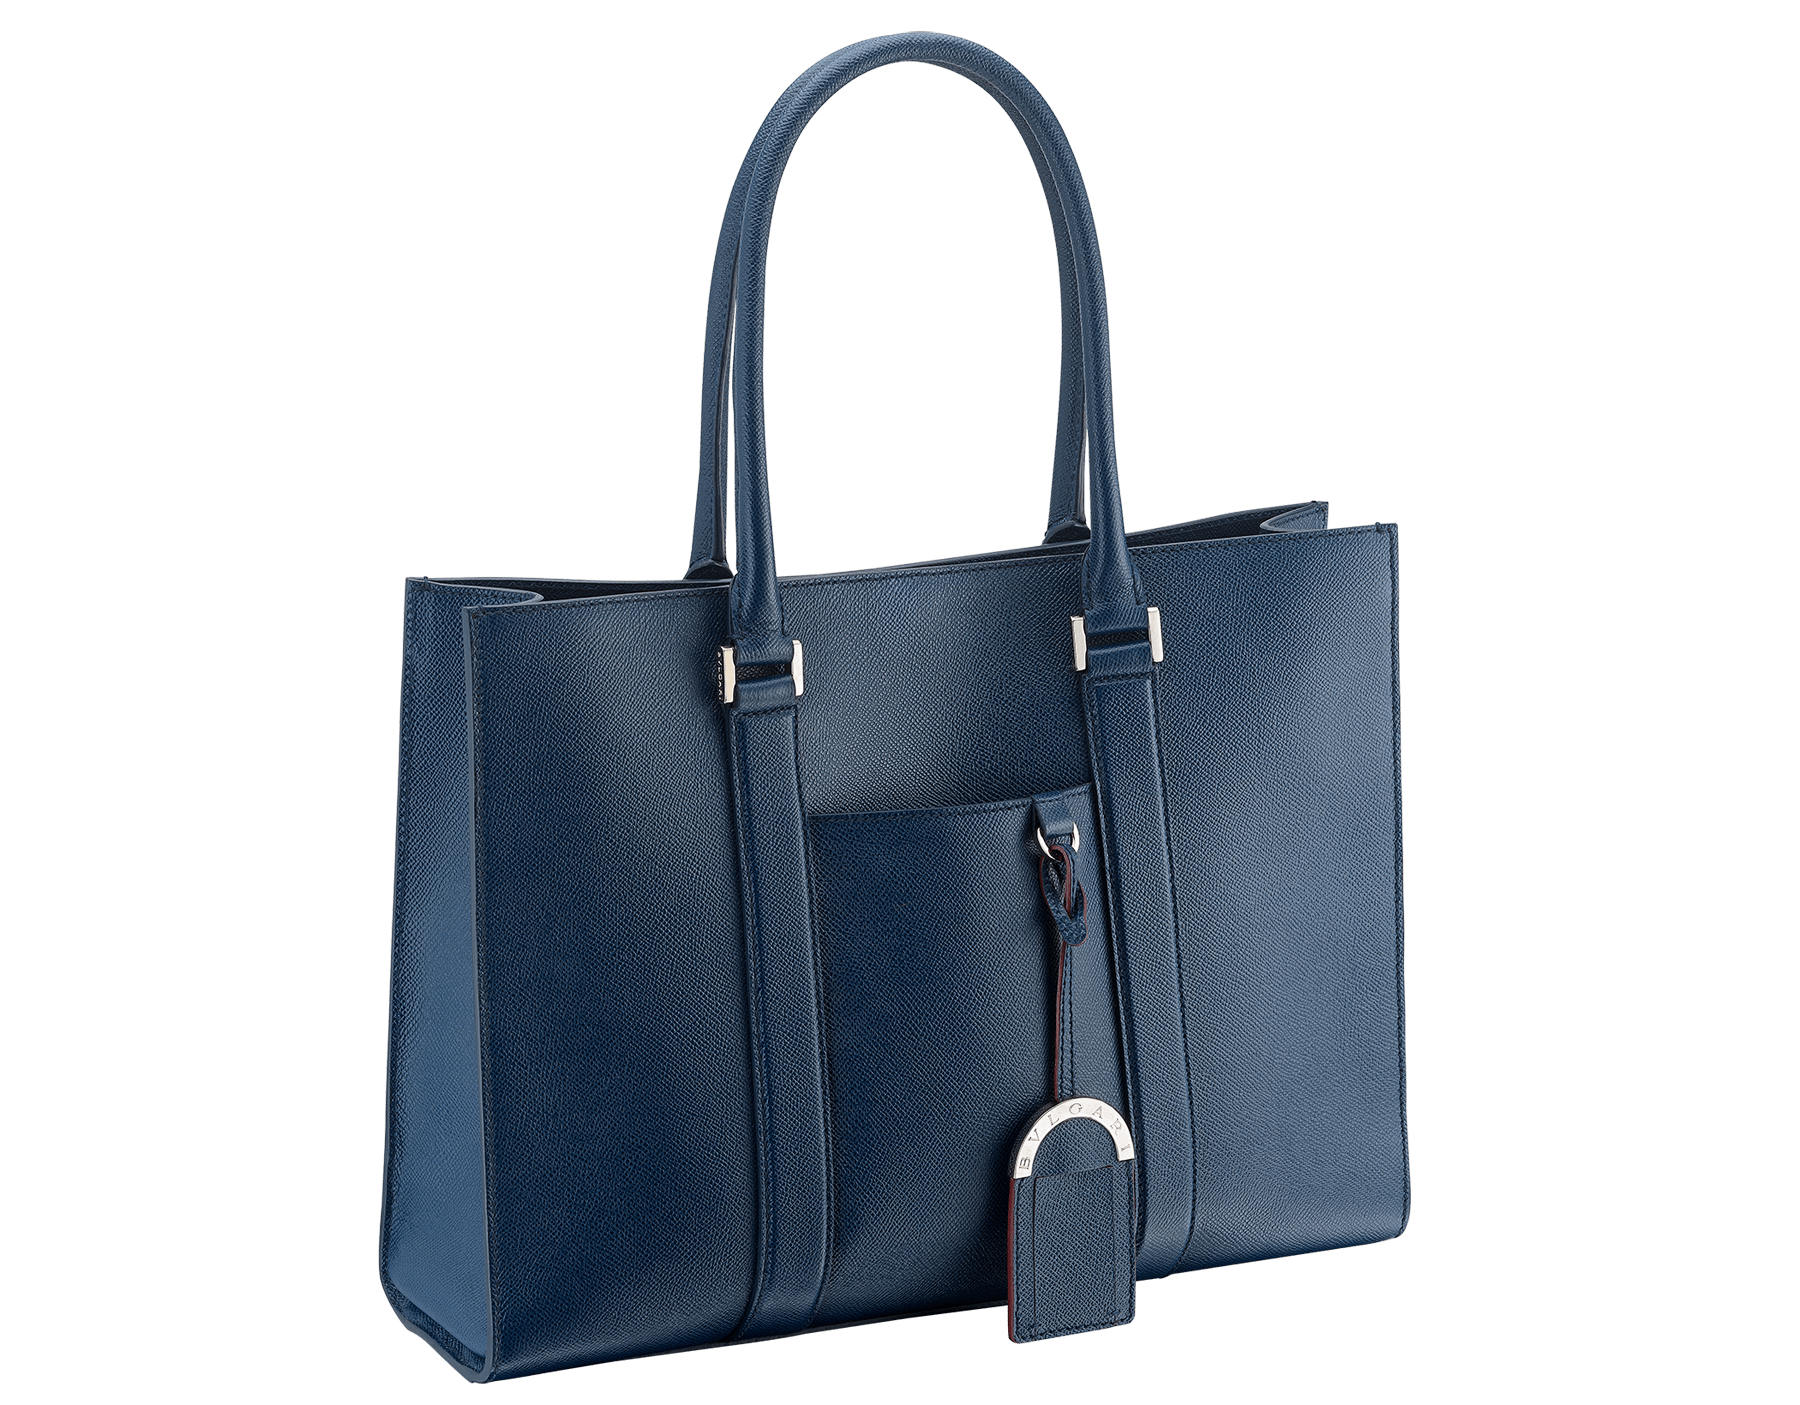 Tote bag in denim sapphire grain calf leather with brass palladium plated hardware. One zipped pocket, three open pockets and Bulgari logo metal tag inside. 39391 image 2